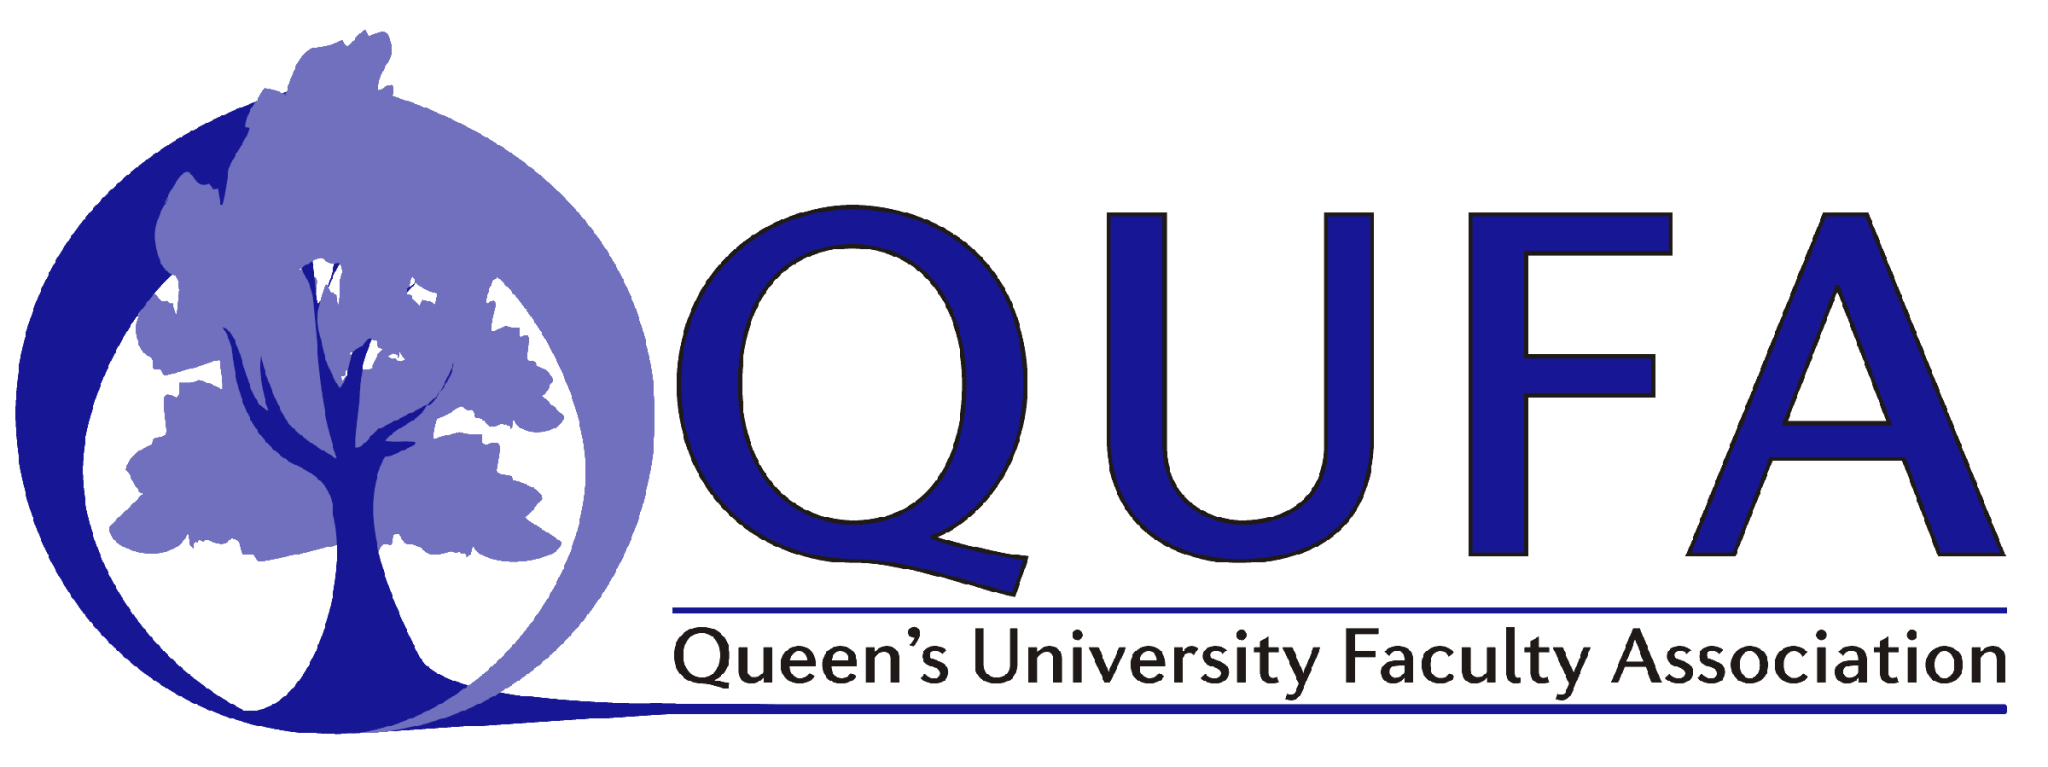 Queen's University Faculty Association logo with a tree